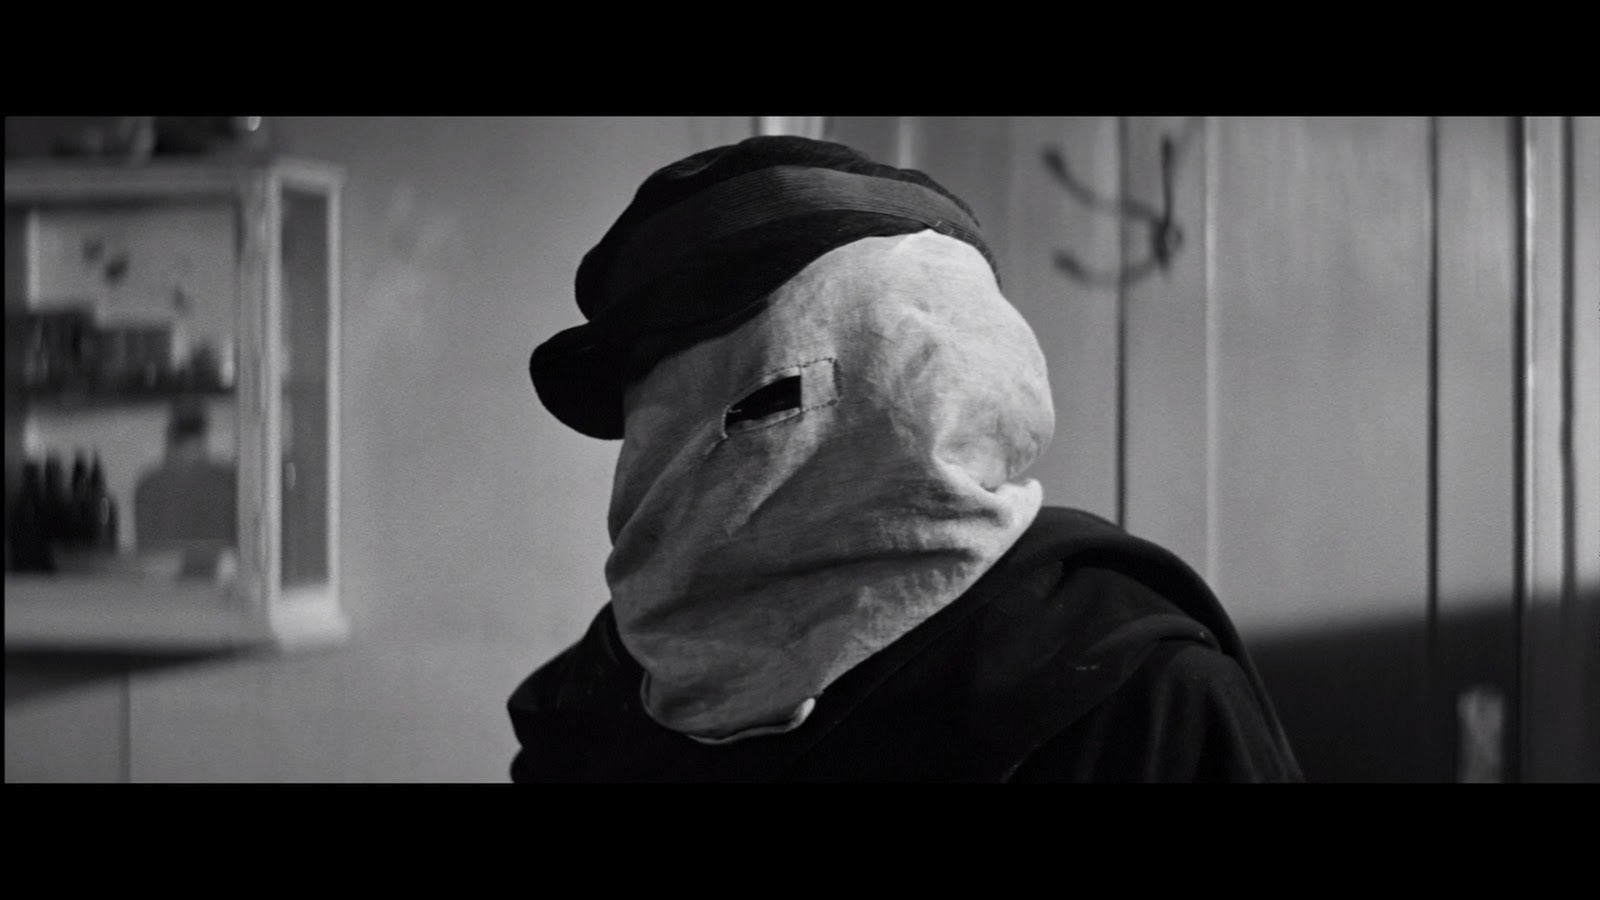 When Not Performing in Freak The Elephant Man (1980)